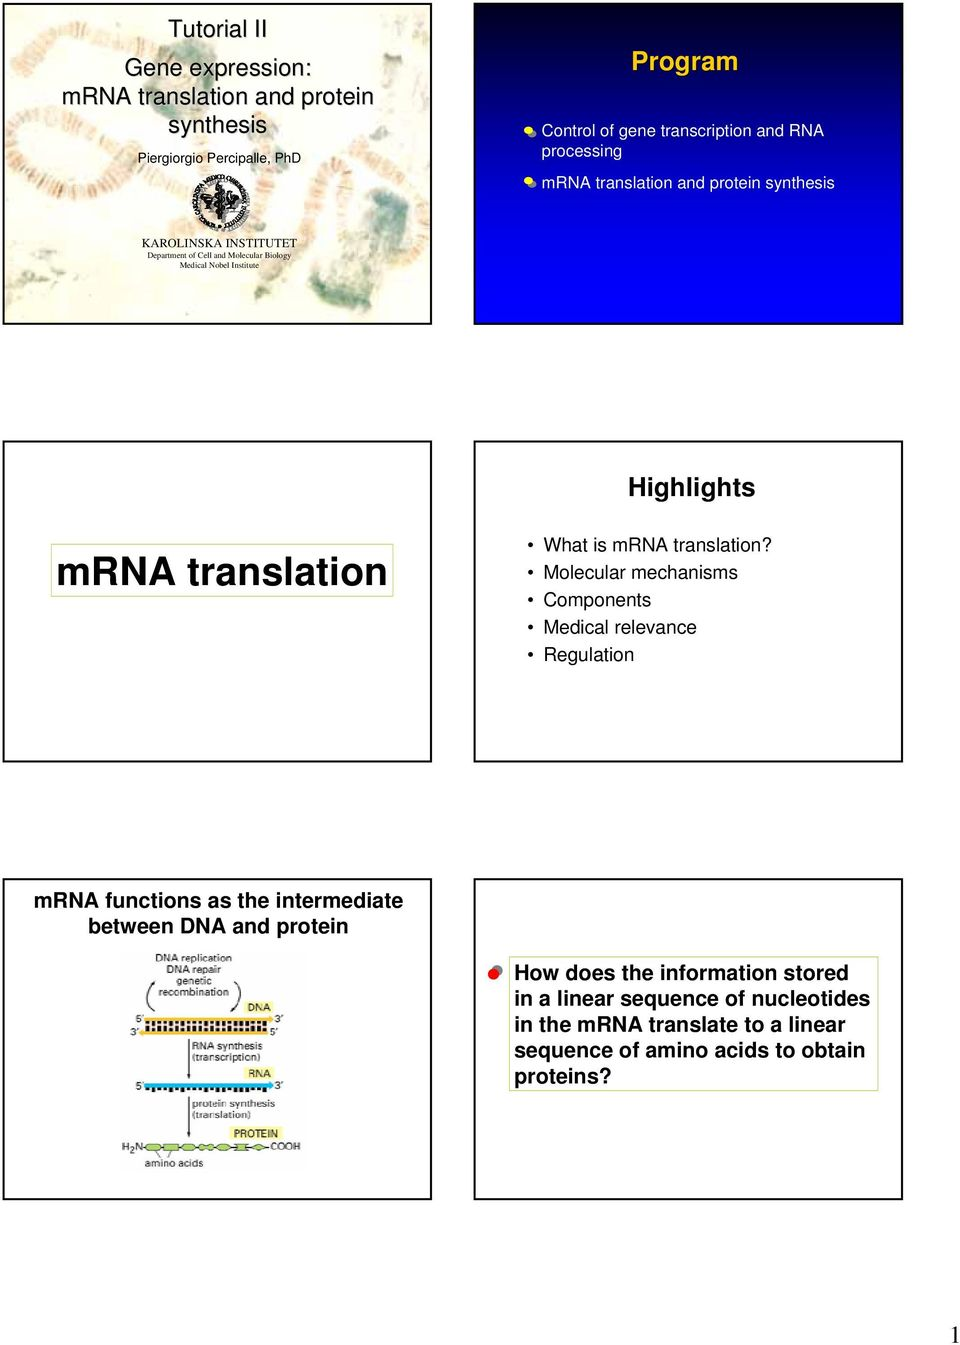 mrna translation What is mrna translation?